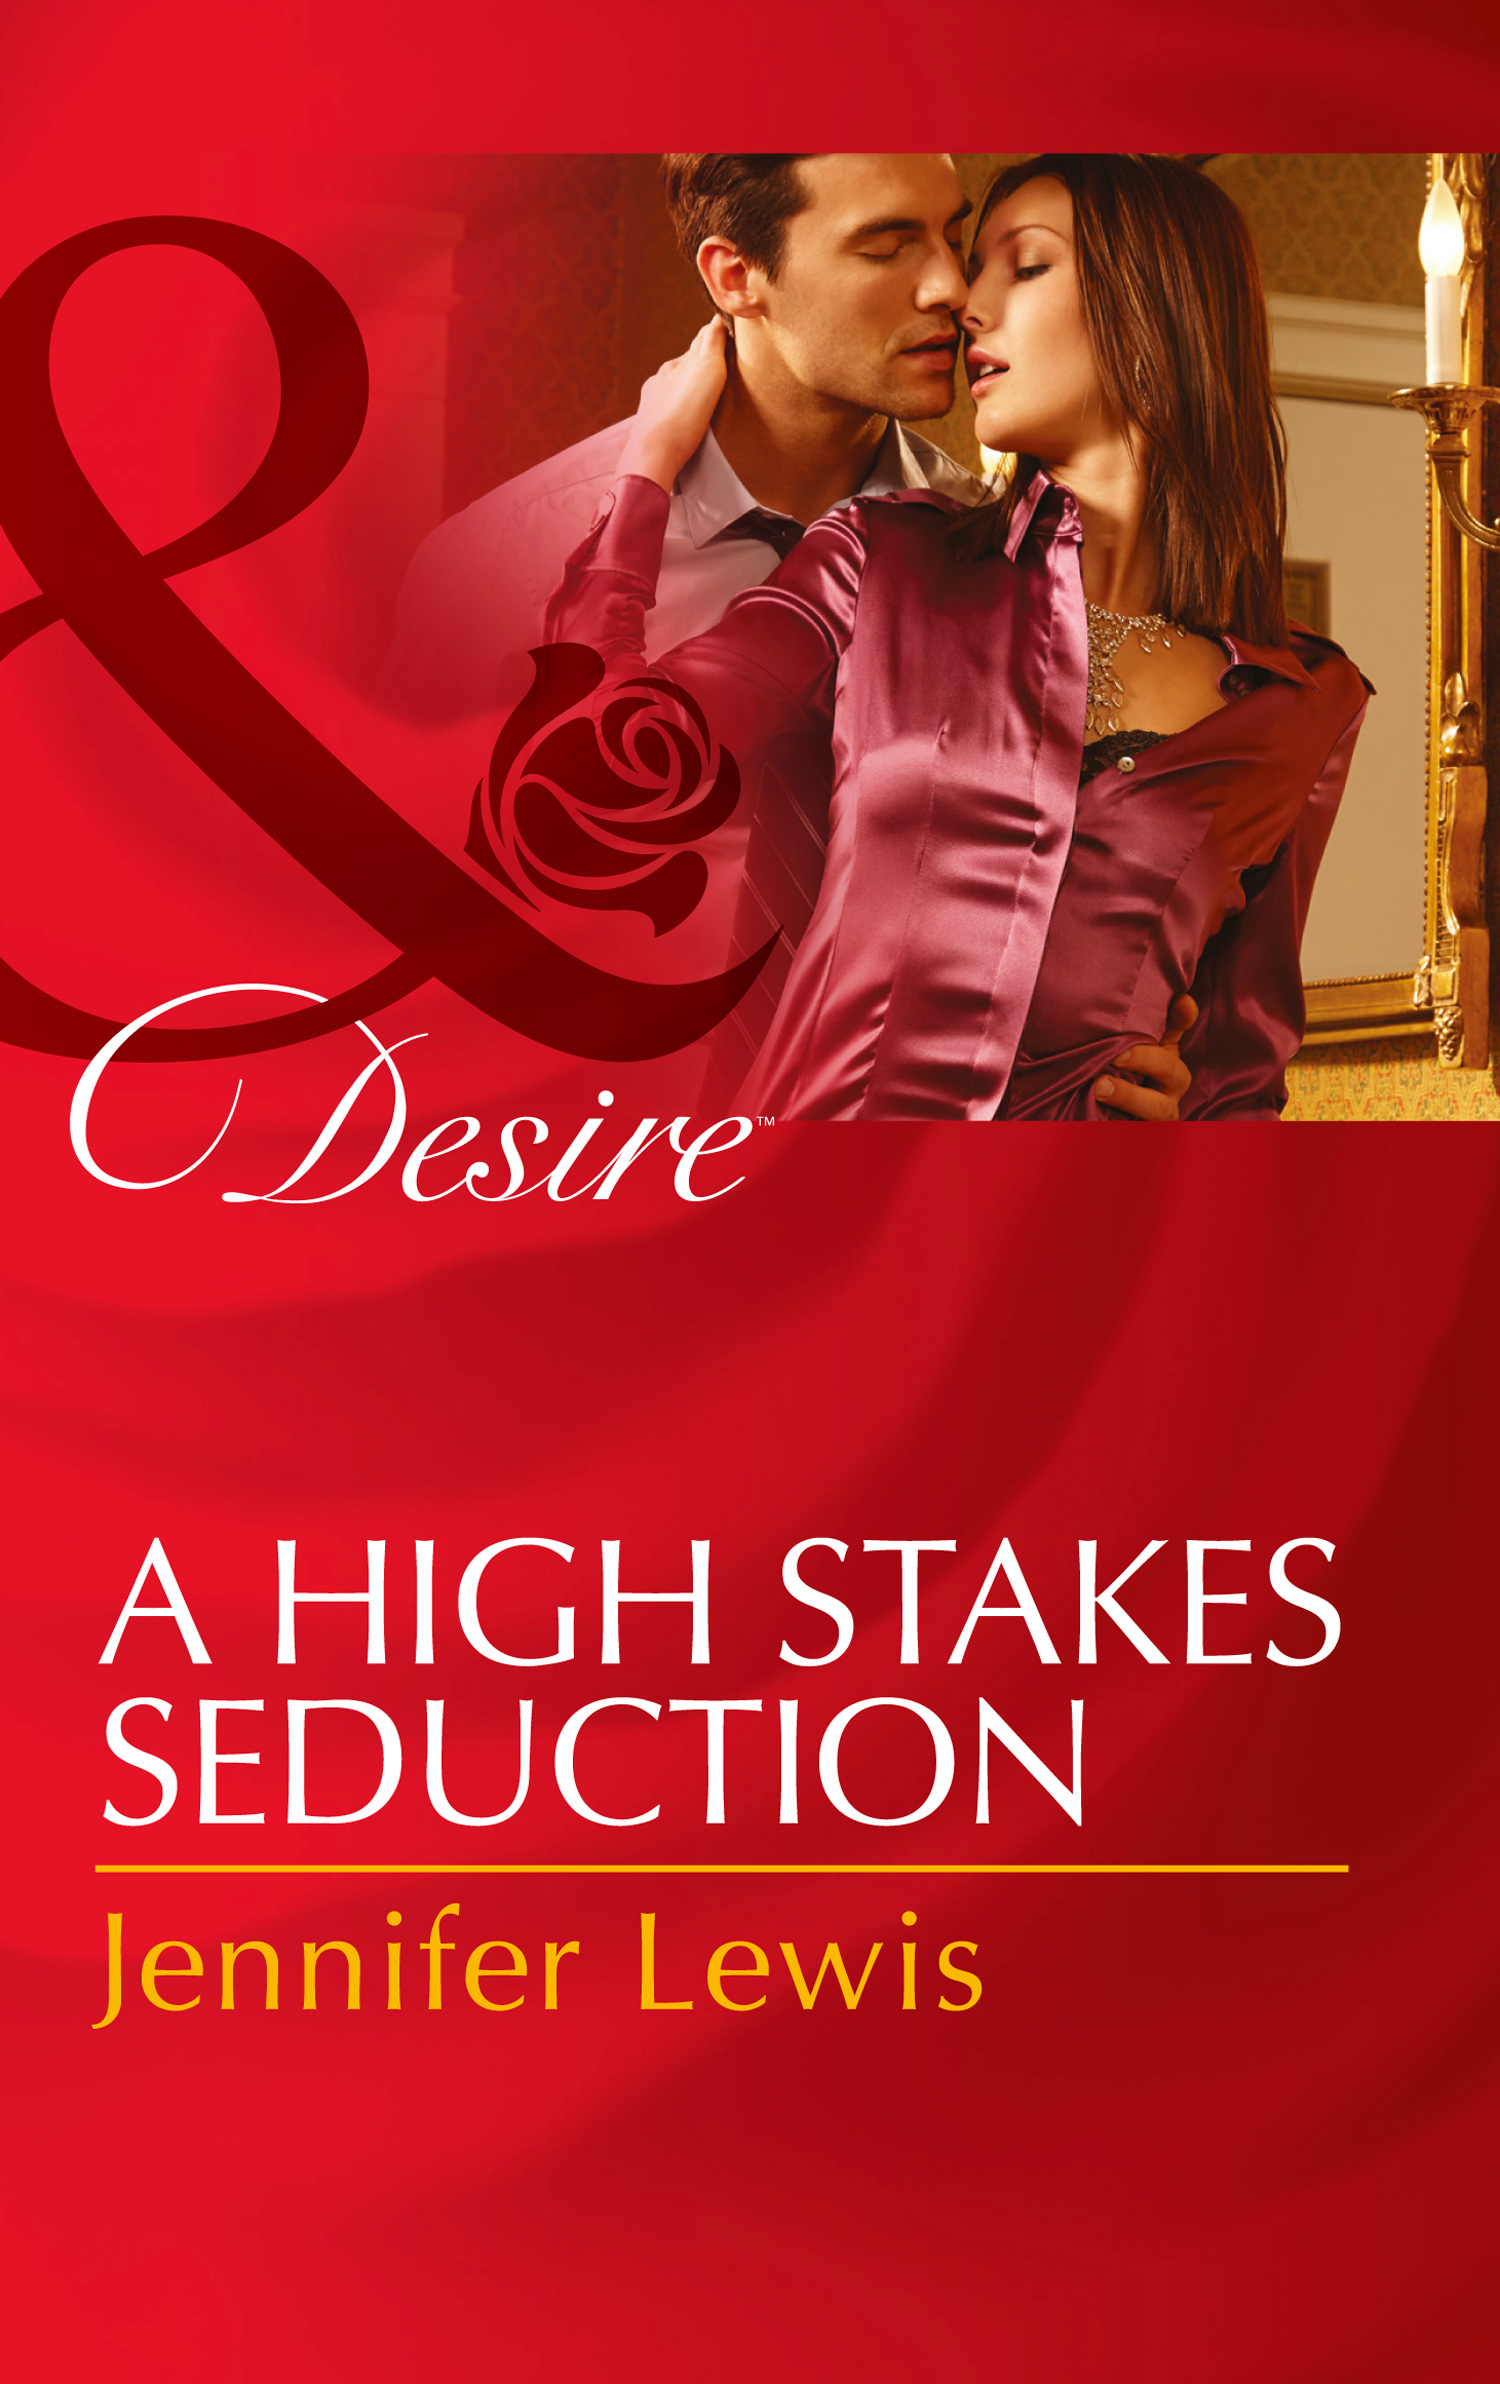 A High Stakes Seduction